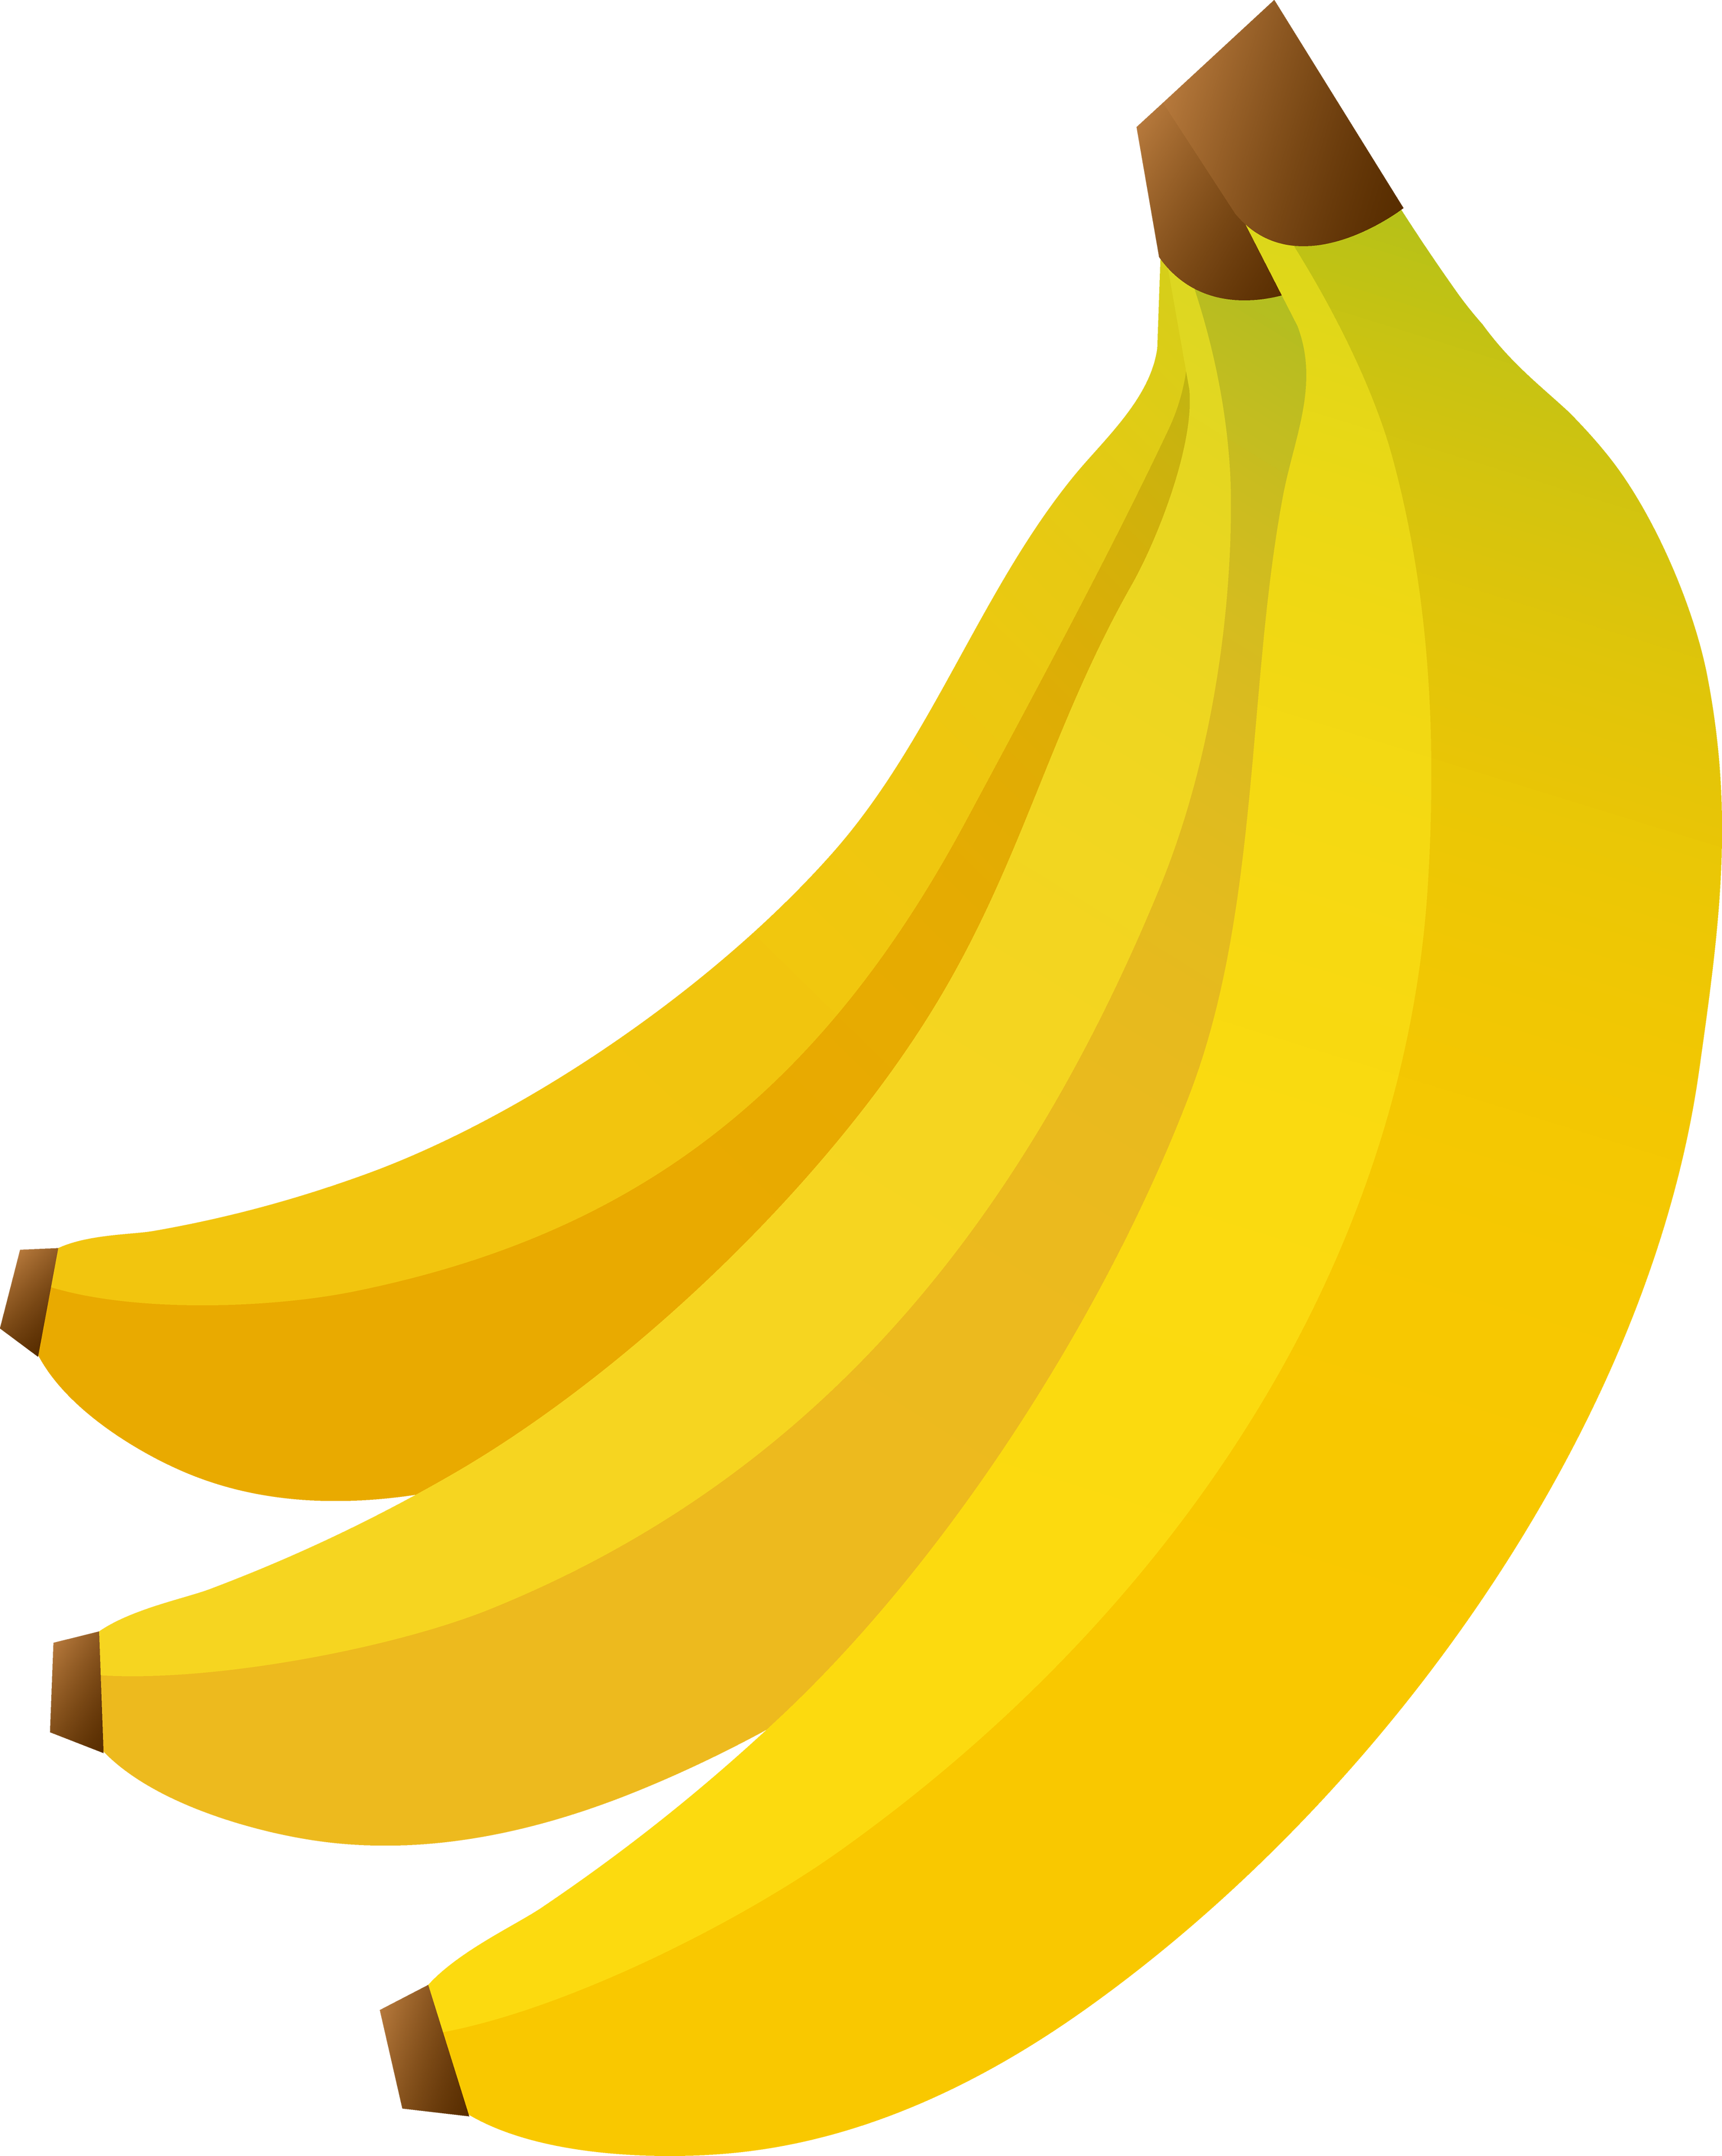 images of bananas png